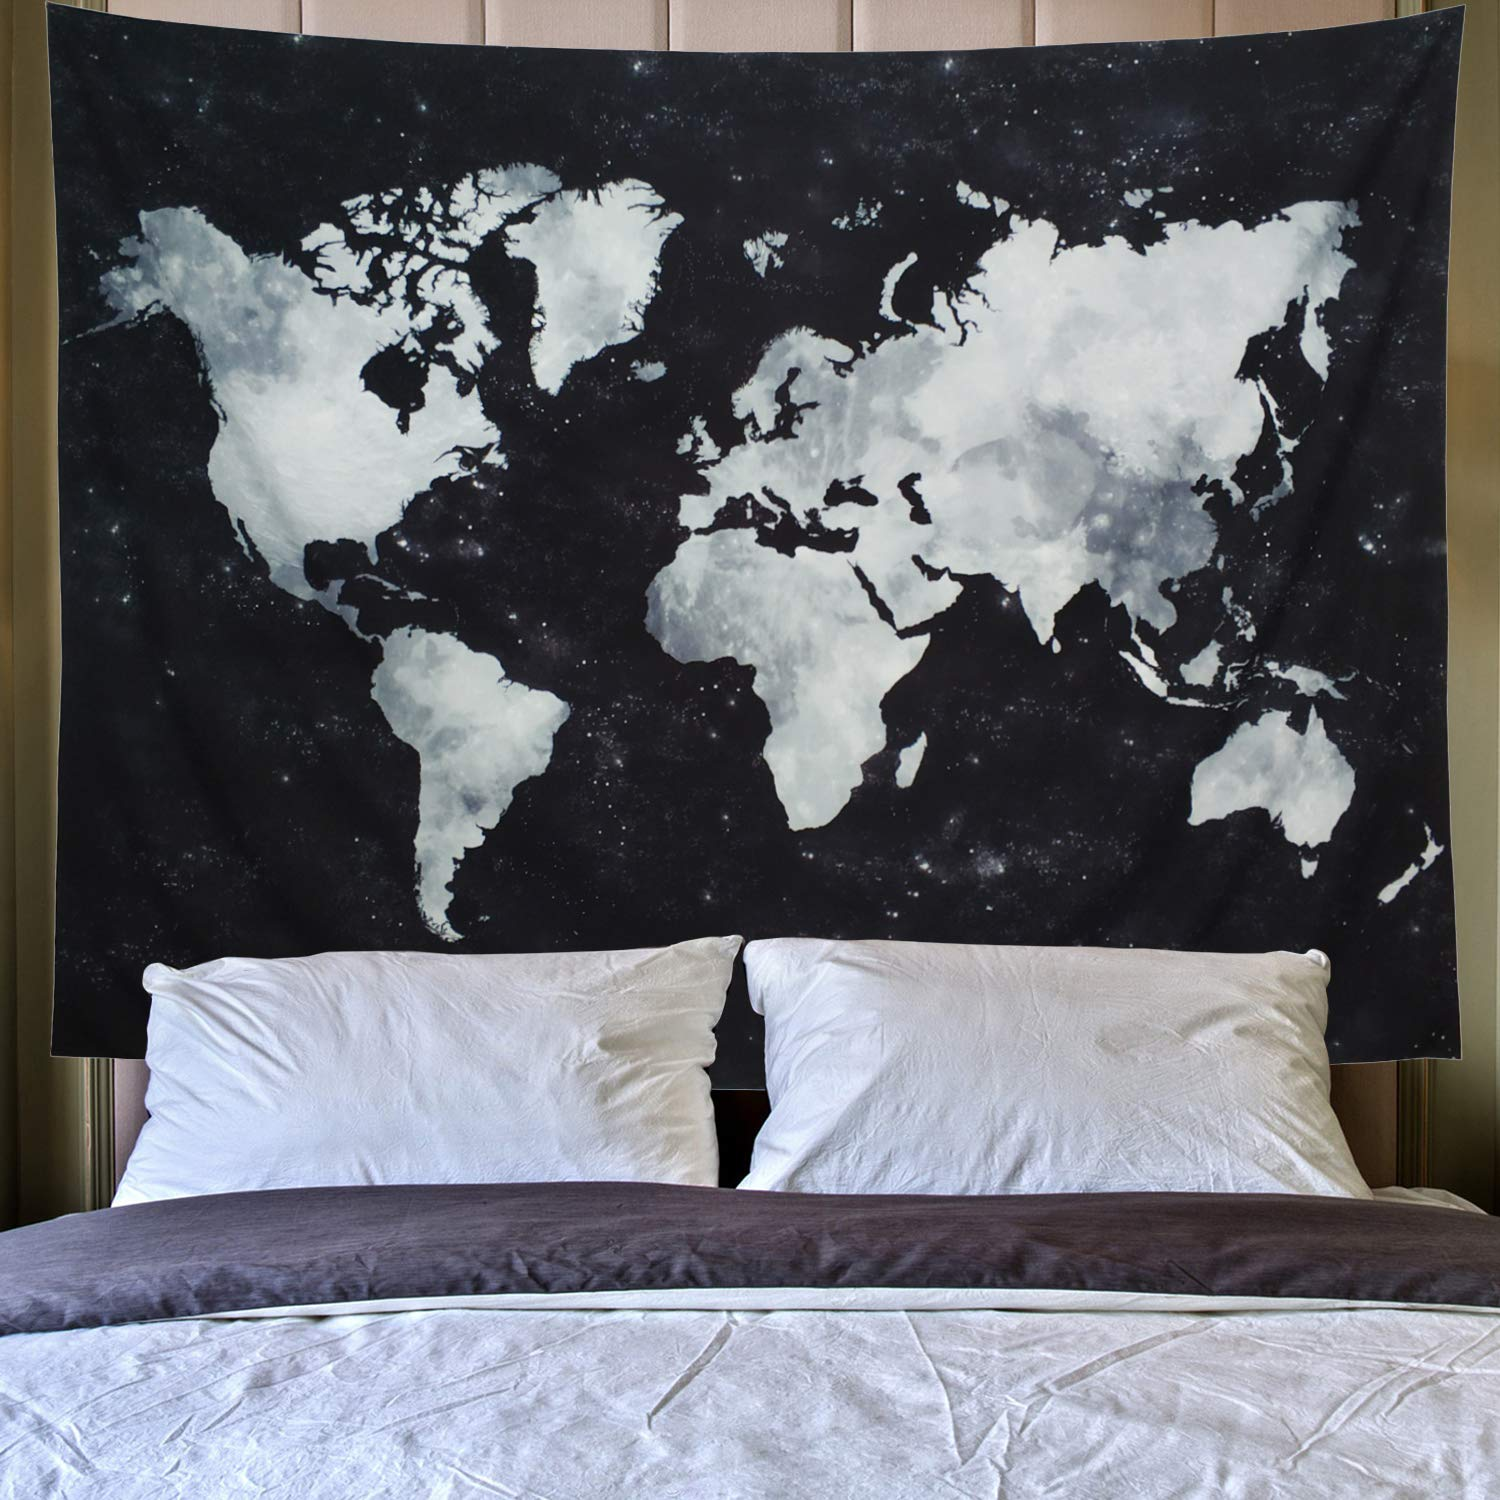 """Lahasbja World Tapestry Map Tapestry Starry World Map Tapestry Apartment Essentials Black and White Tapestry Globe Galaxy Constellation Tapestry for Men Dorm Posters (M/51.2"""" × 59.1"""", Starry Map)"""